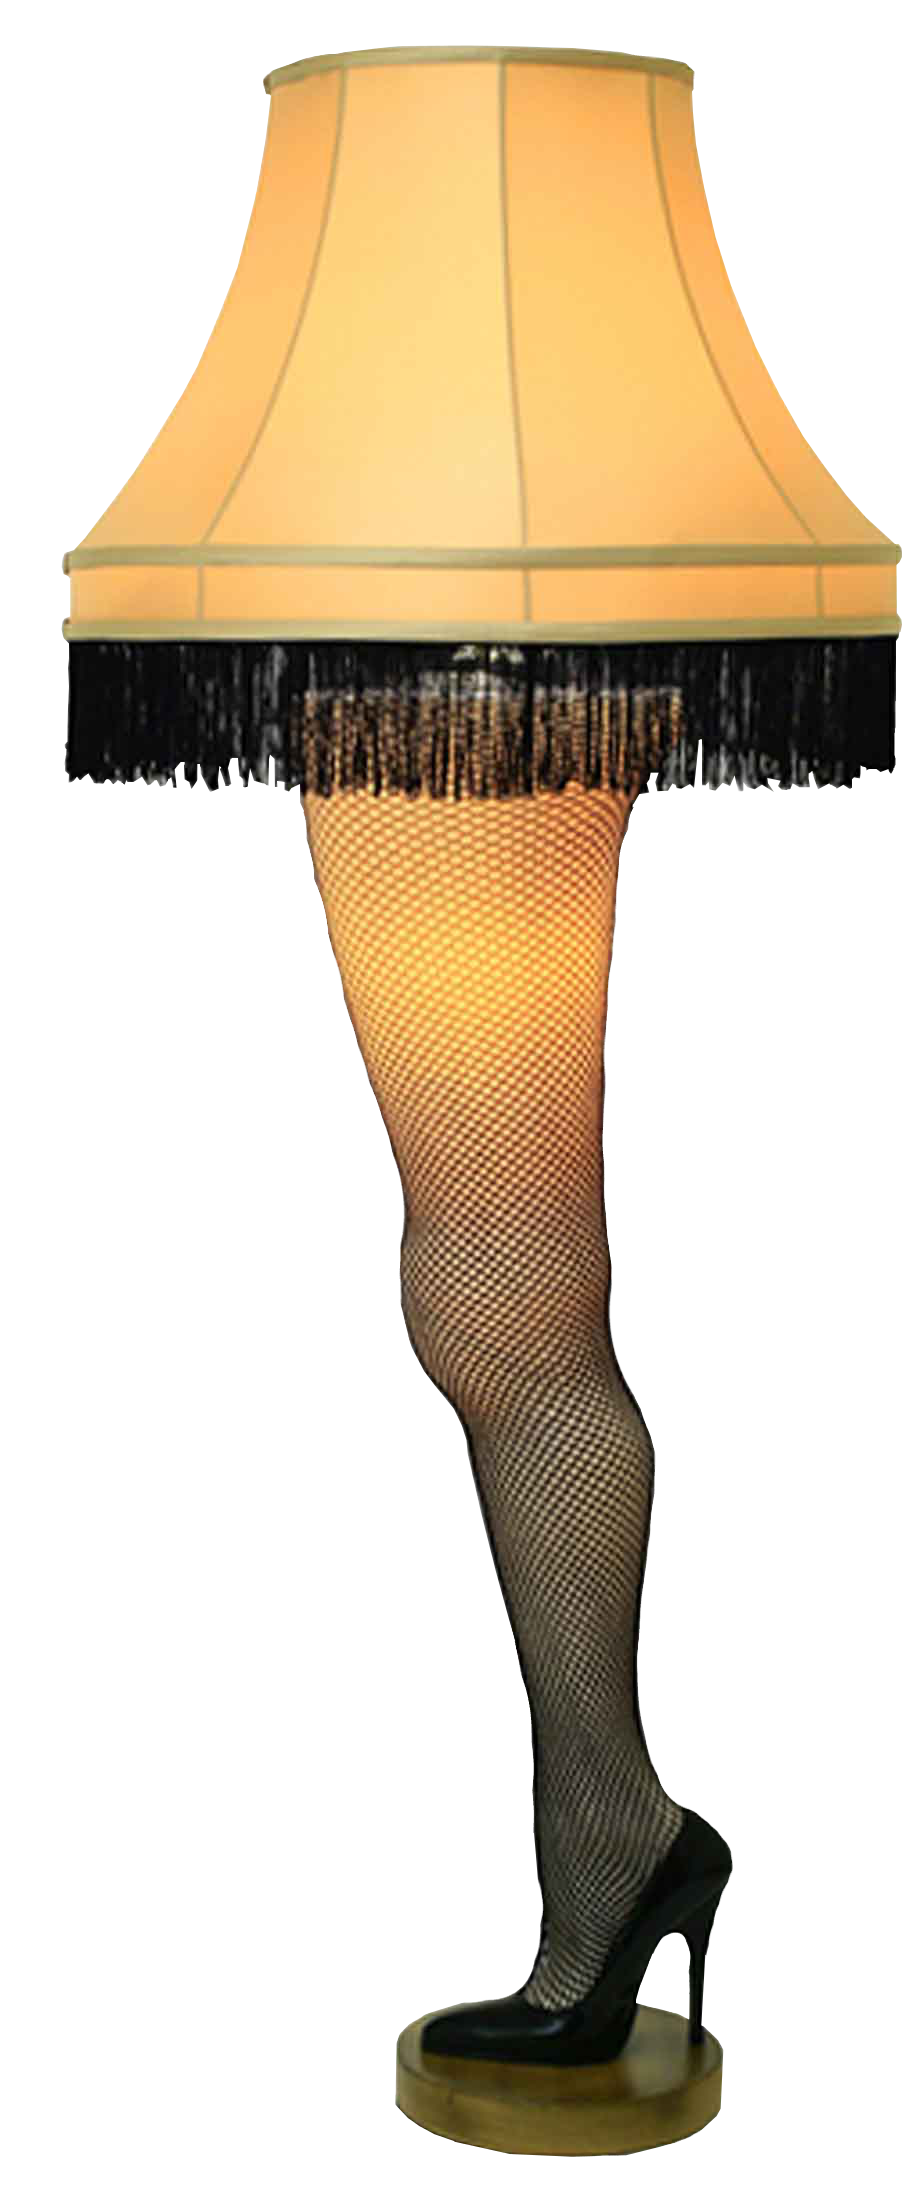 Leg Lamp | Warehouse 13 Wiki | FANDOM powered by Wikia